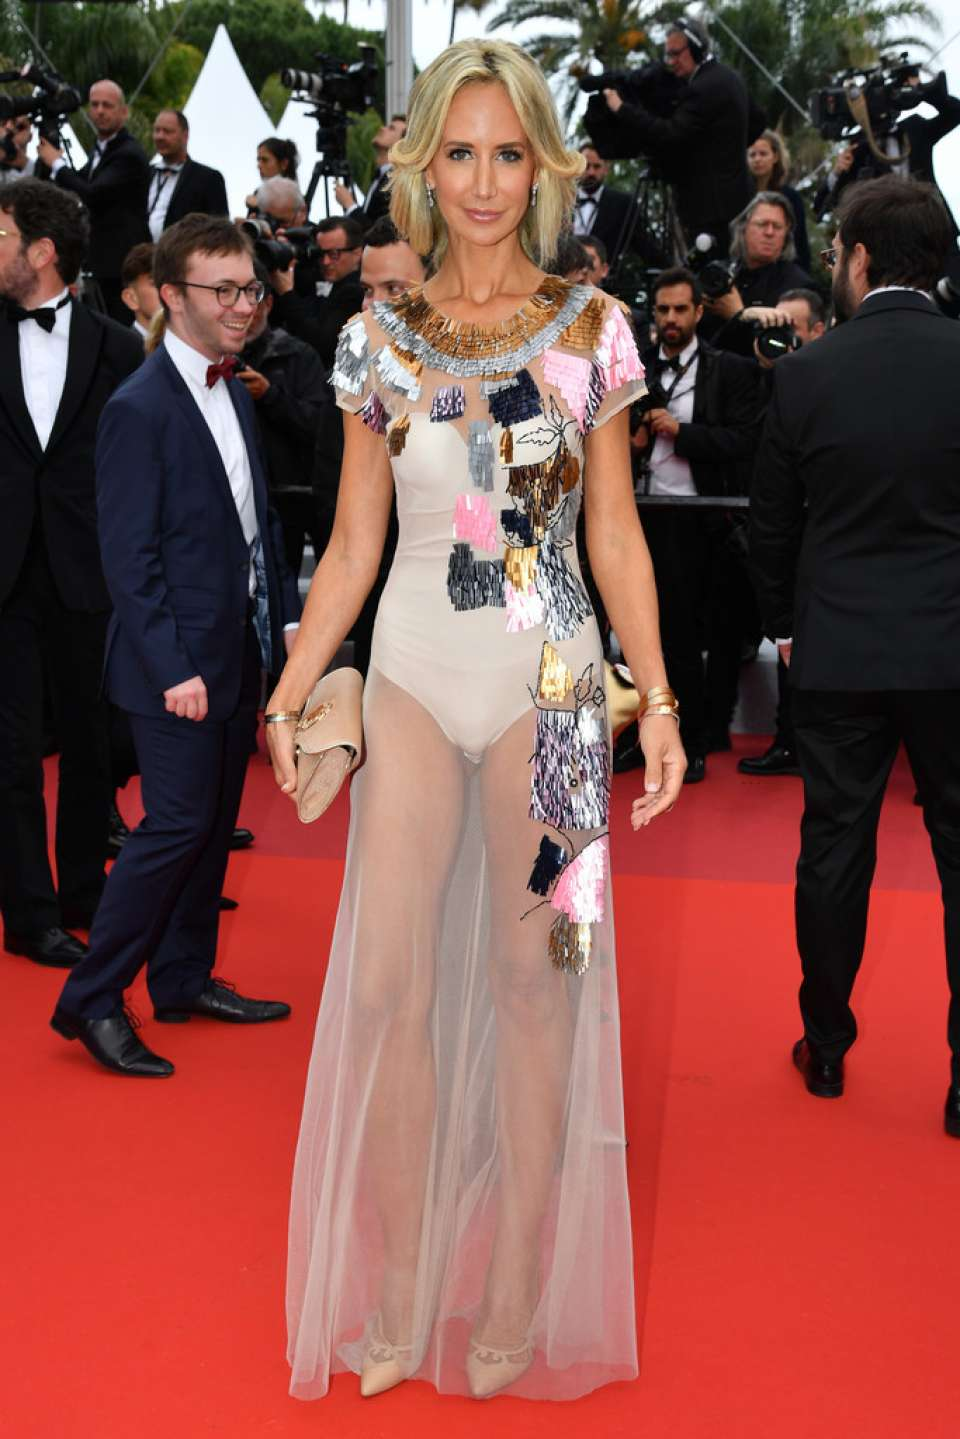 Lady Victoria Hervey - 'A Hidden Life' Premiere at 2019 Cannes Film Festival